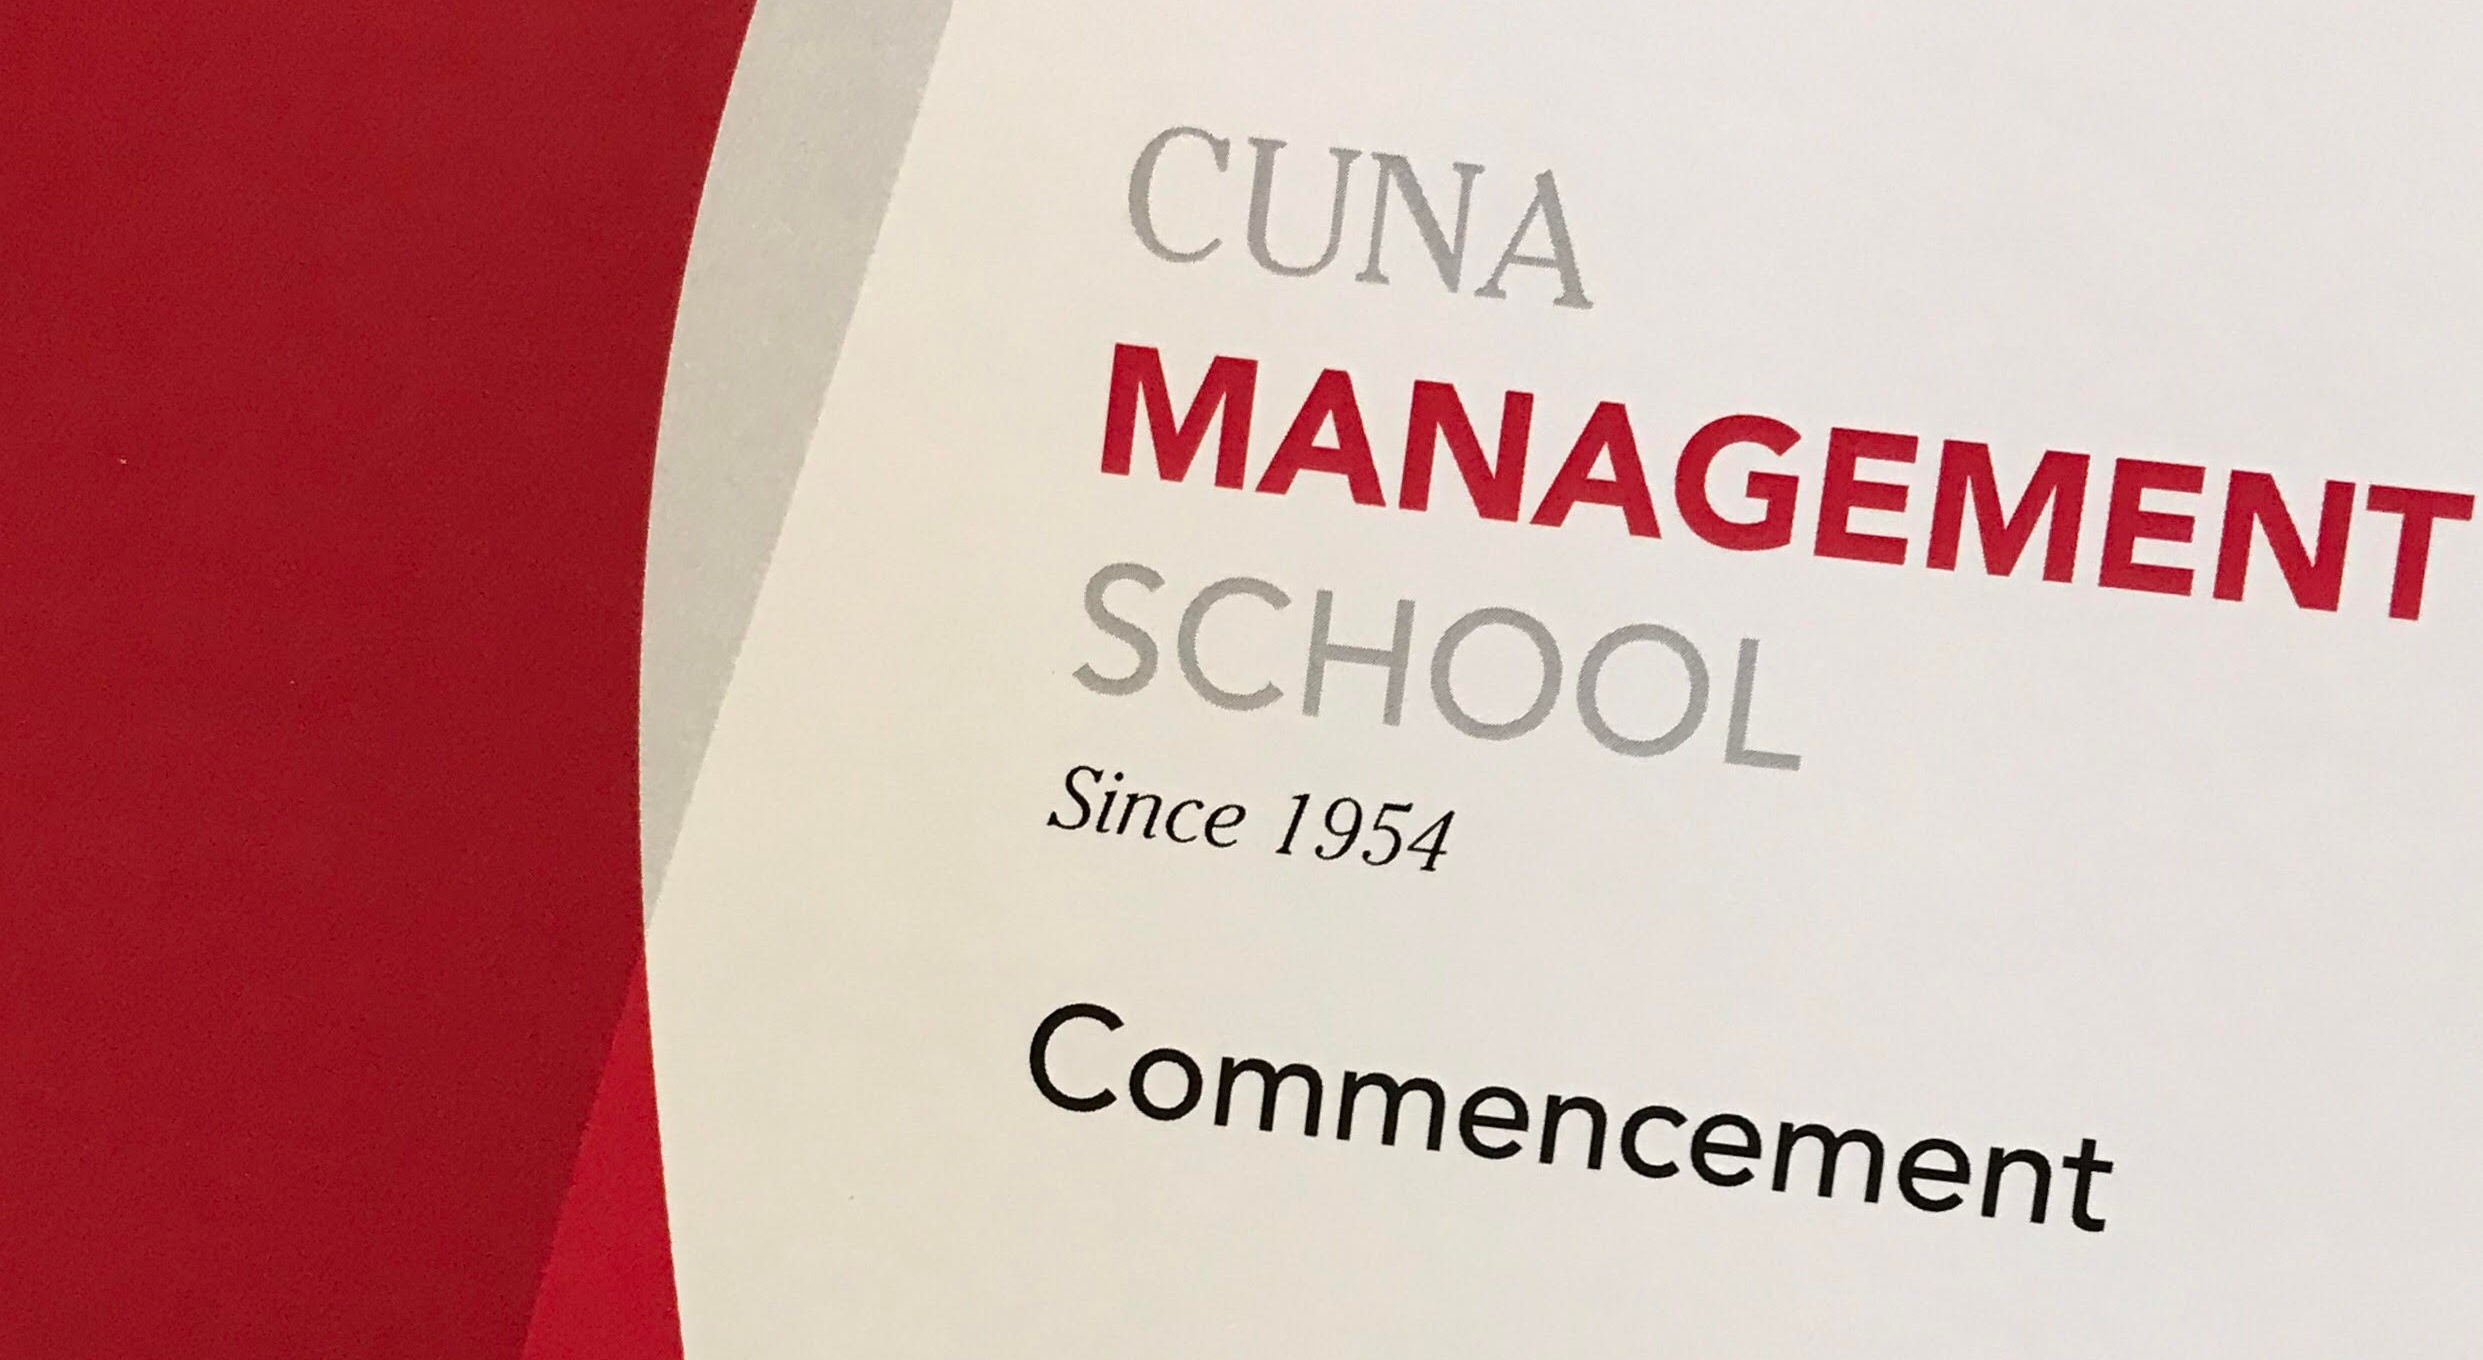 CUNA Management School Commencement program